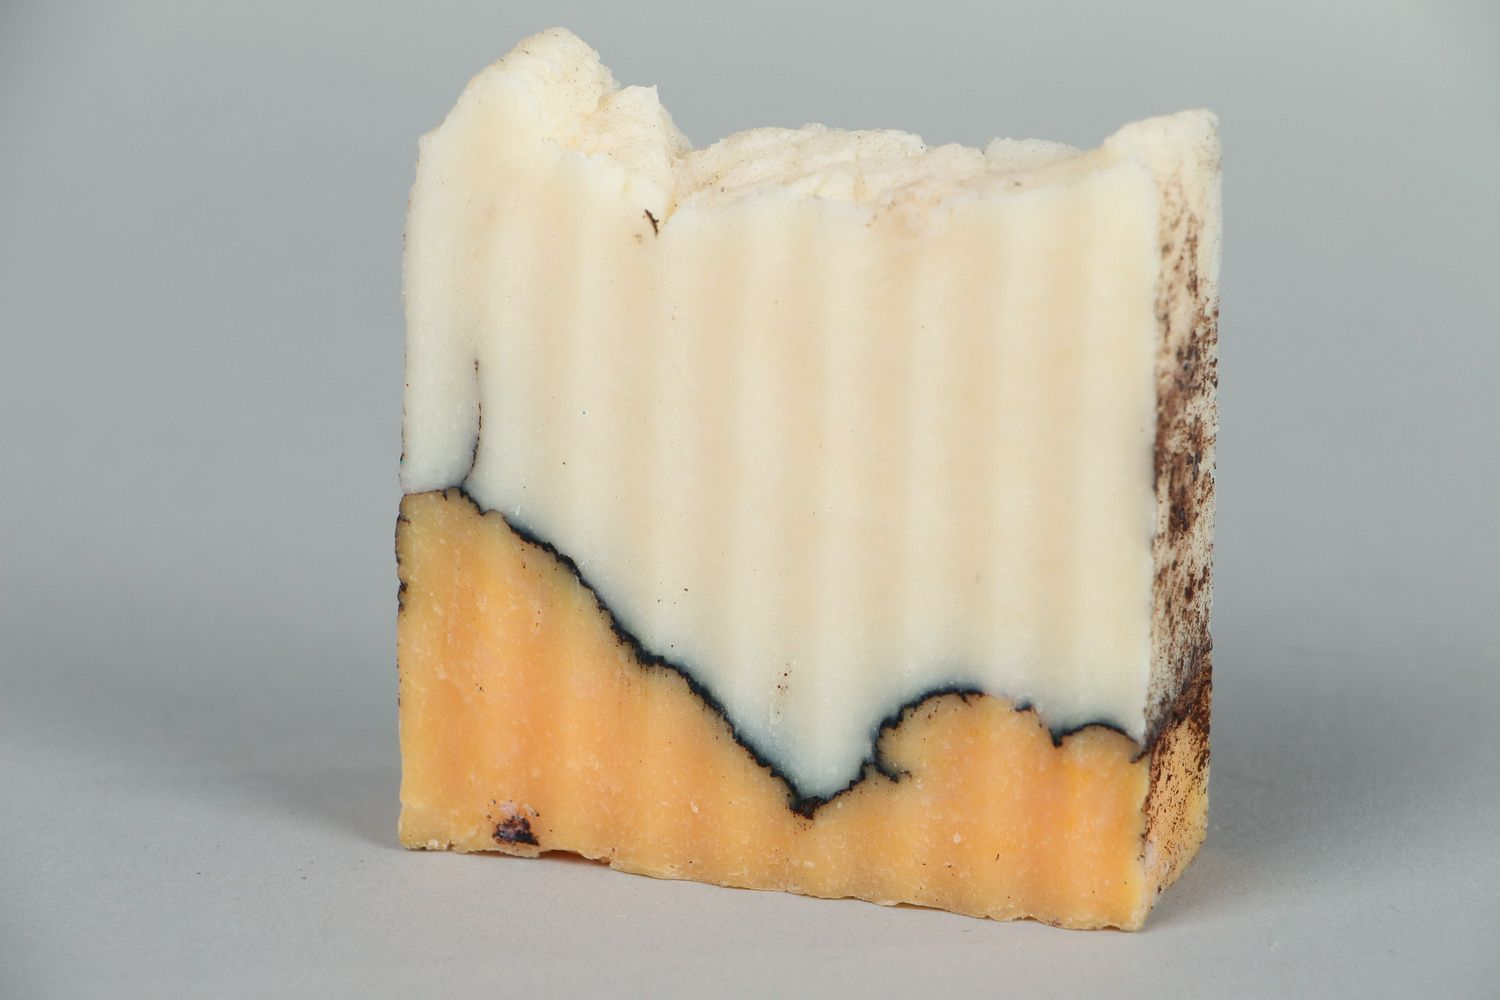 Soap with palm oil photo 1